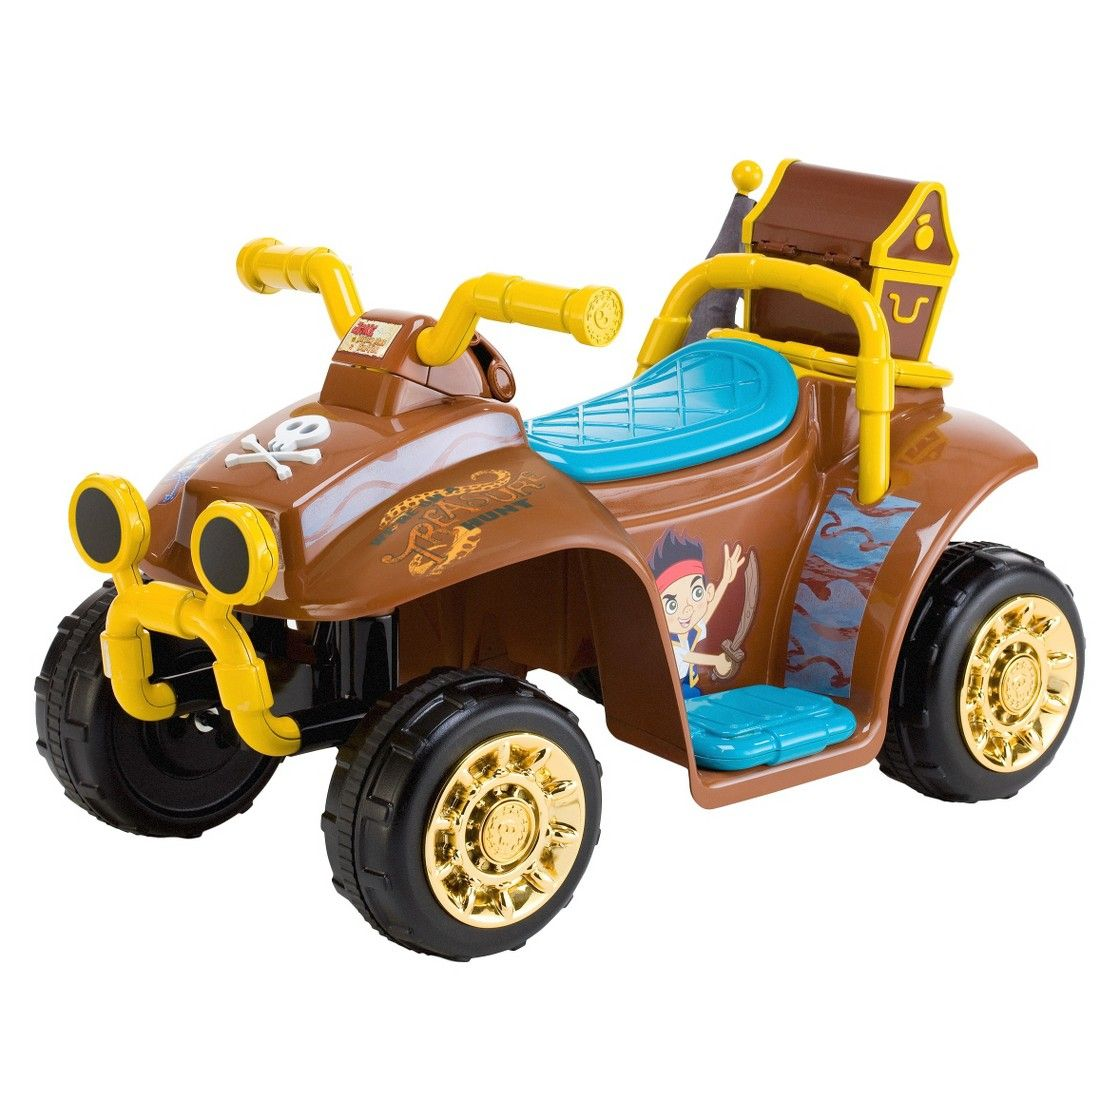 Kid Trax Disney Jake and the Neverland Pirates 6V Quad Ride On.  My son would love this!